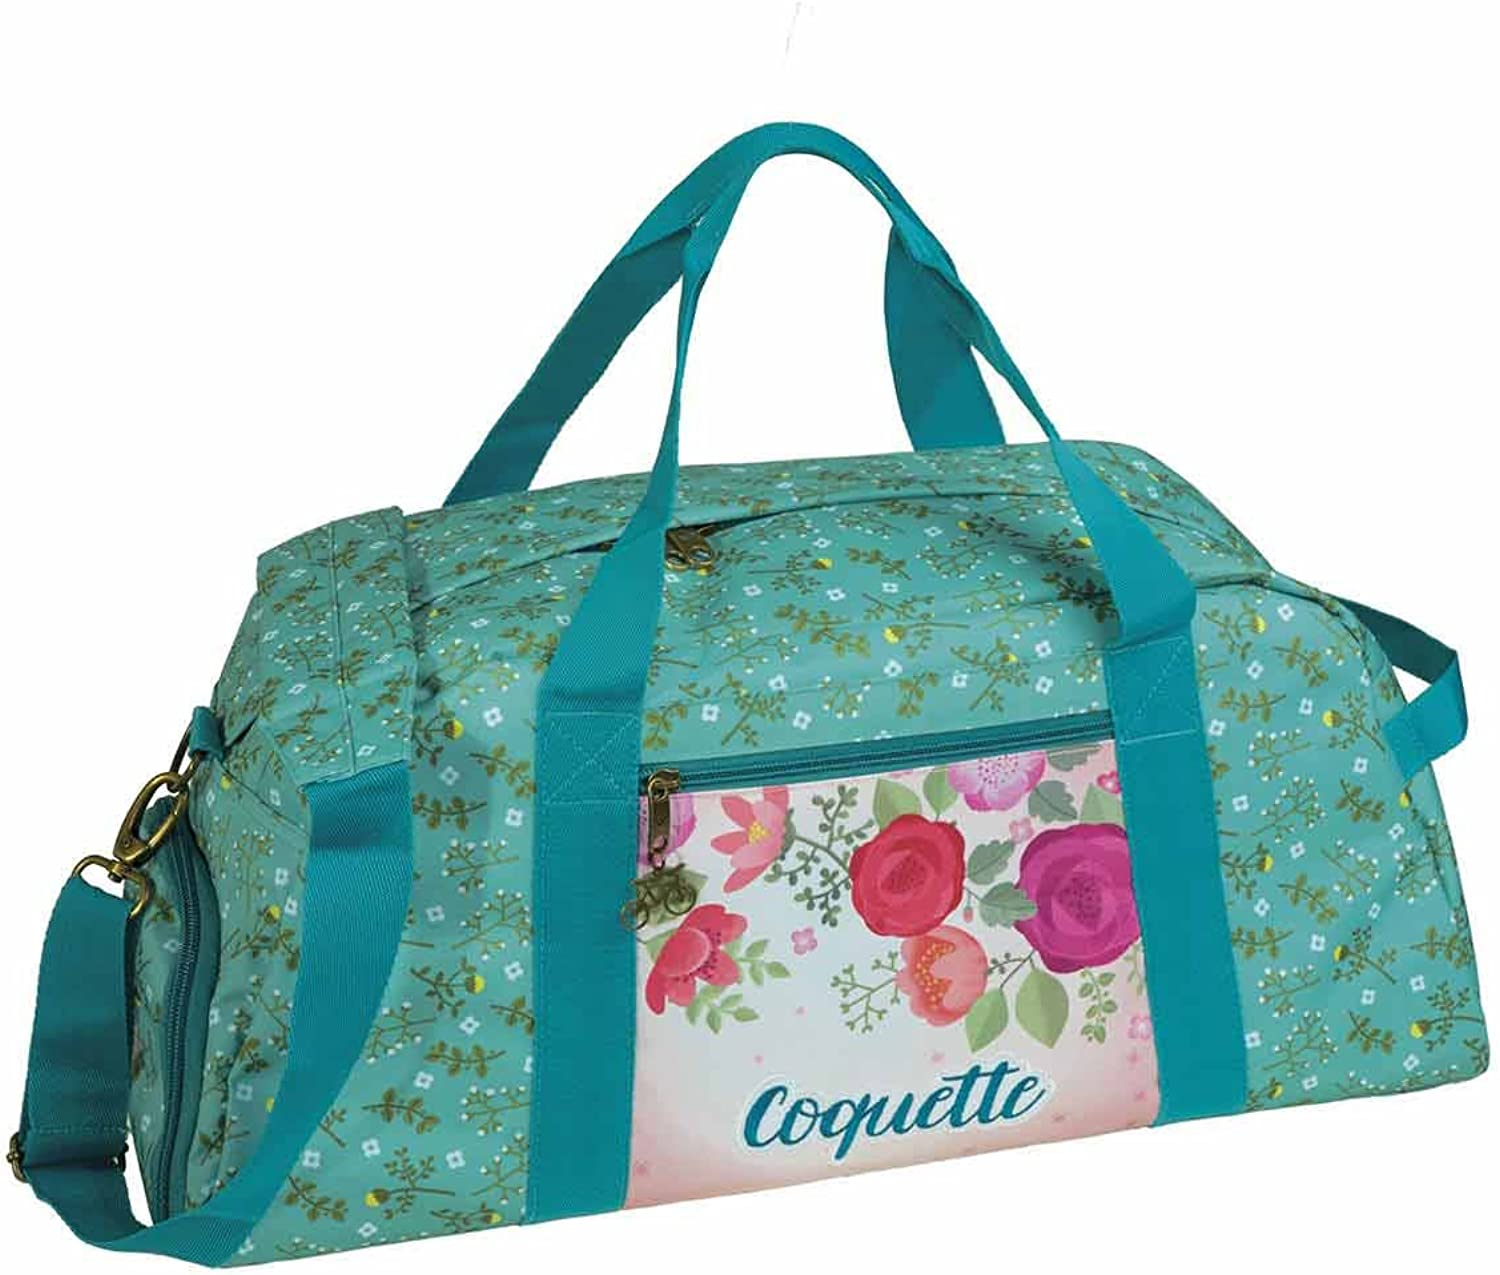 Weekend bag COQUETTE by BUSQUETS